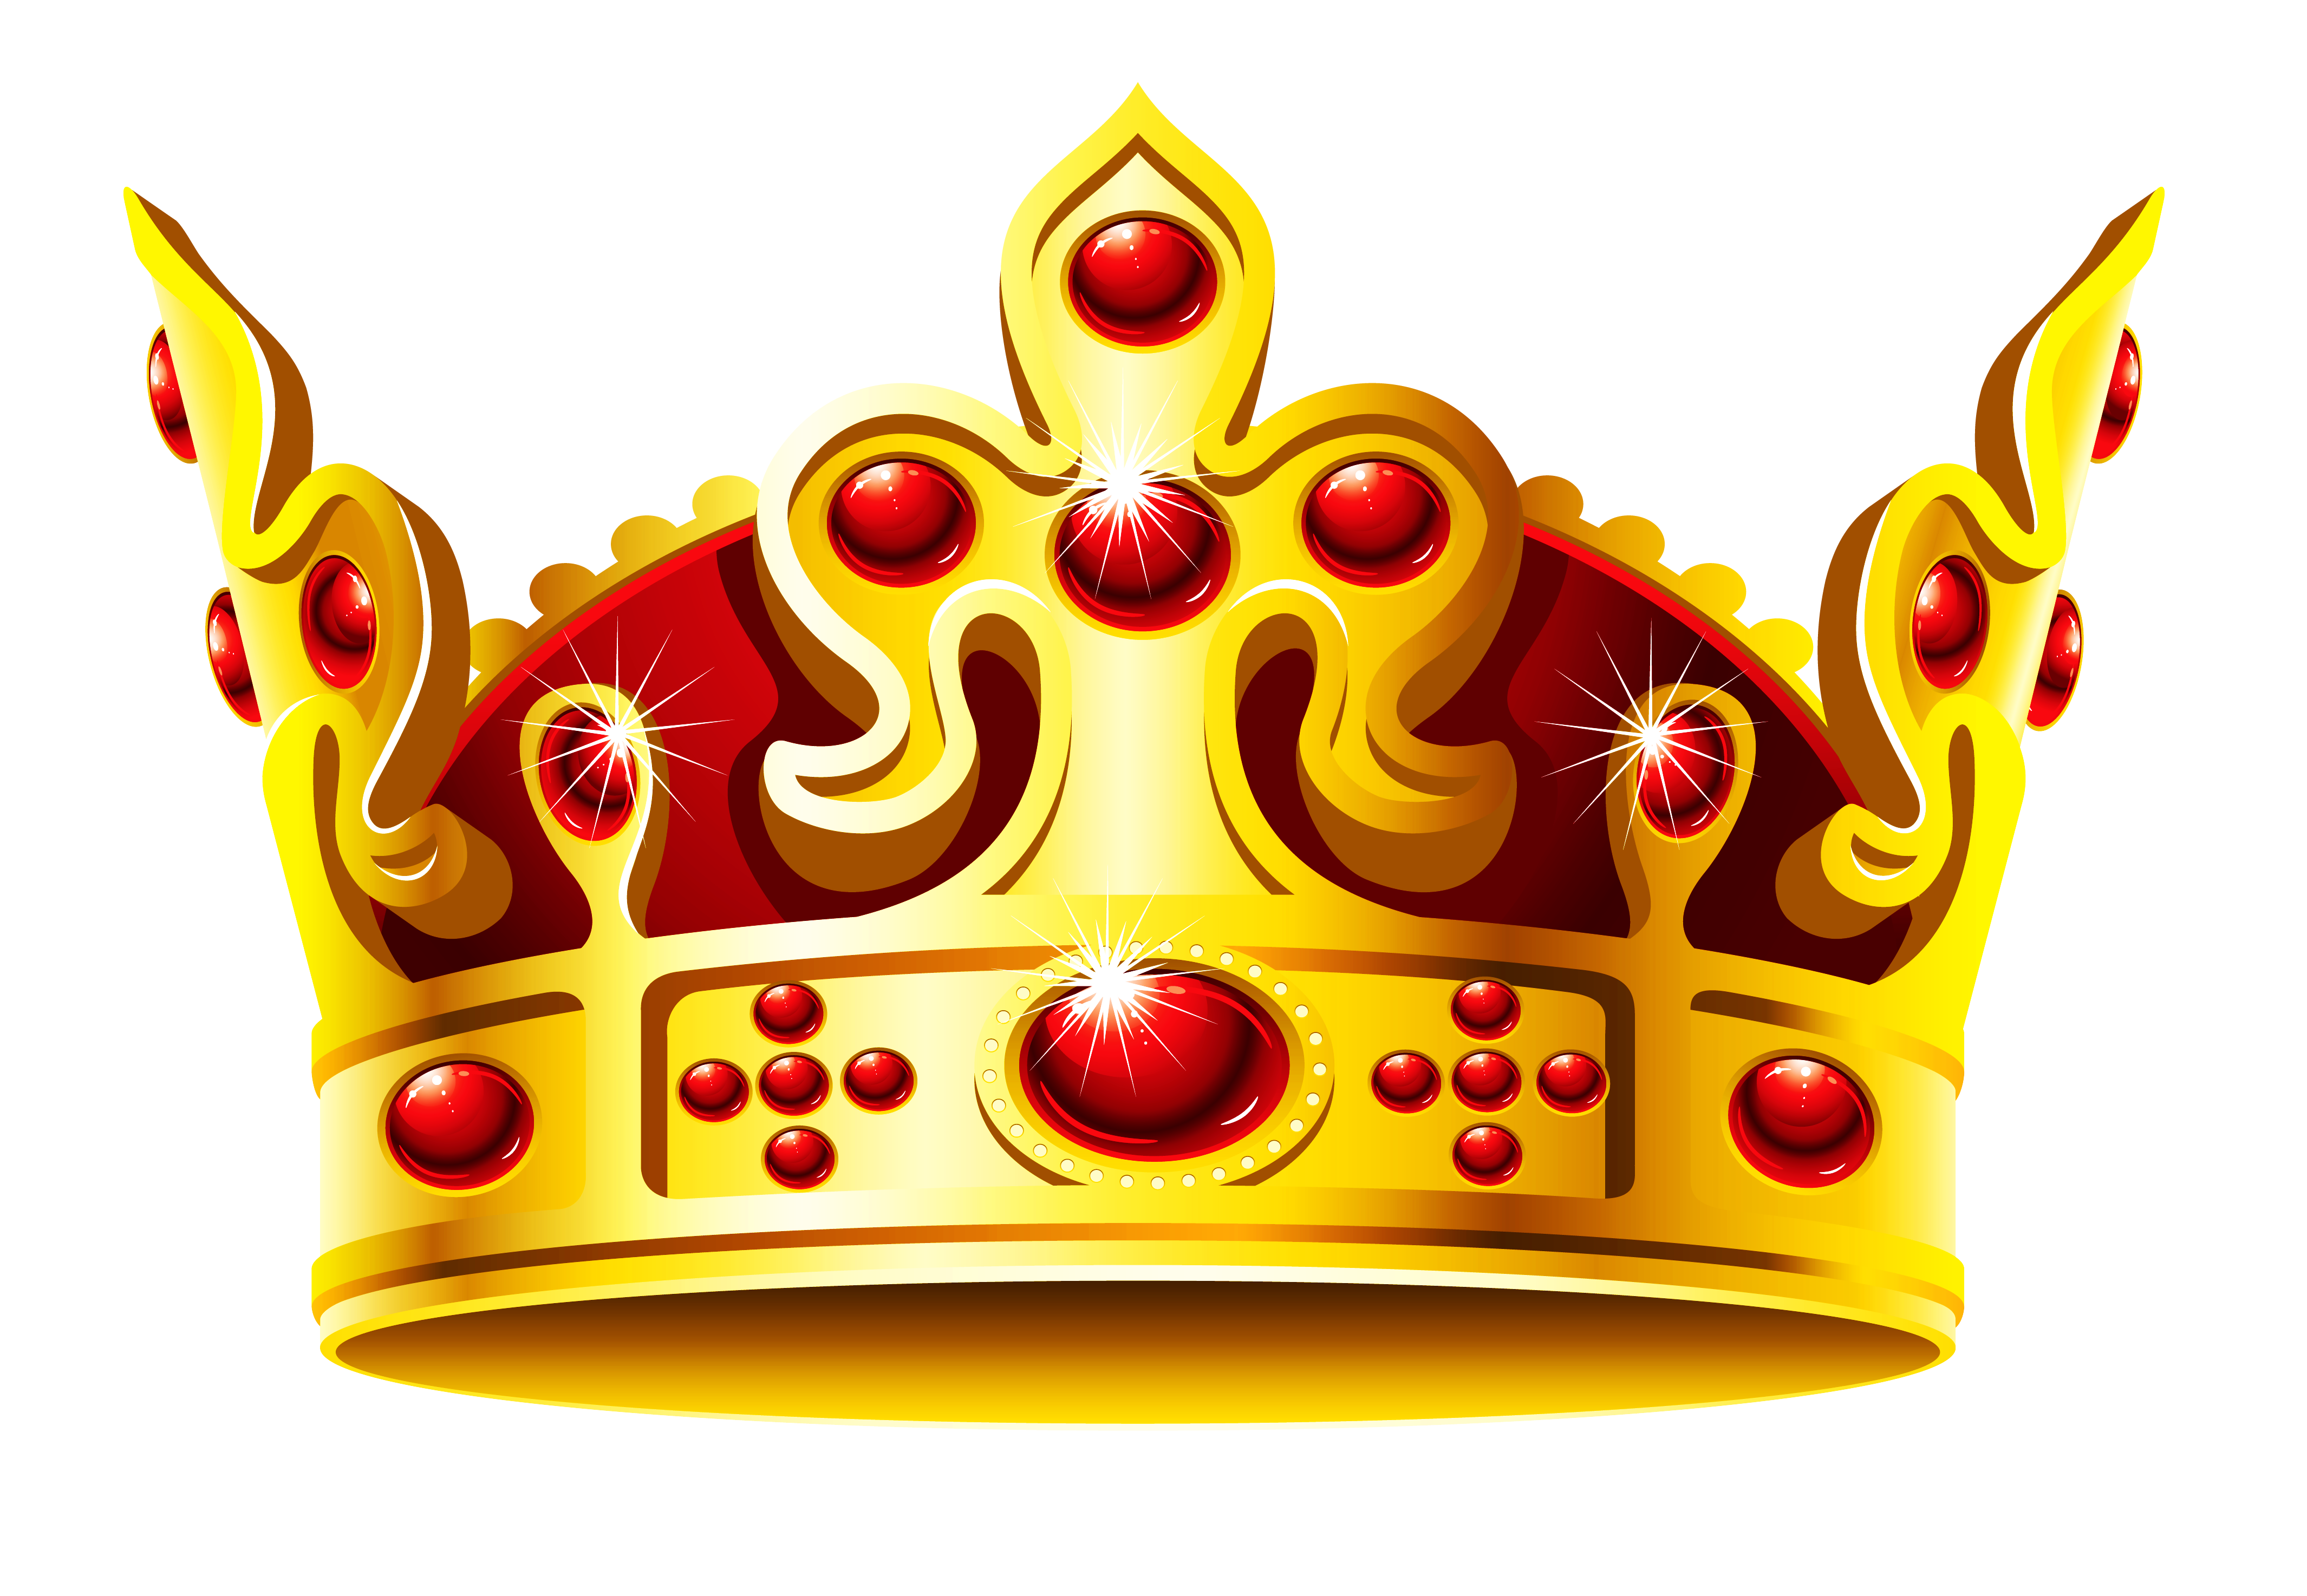 Famous with crown clipart picture free stock Crown Clip art - crown jewels 4260*2948 transprent Png Free Download ... picture free stock